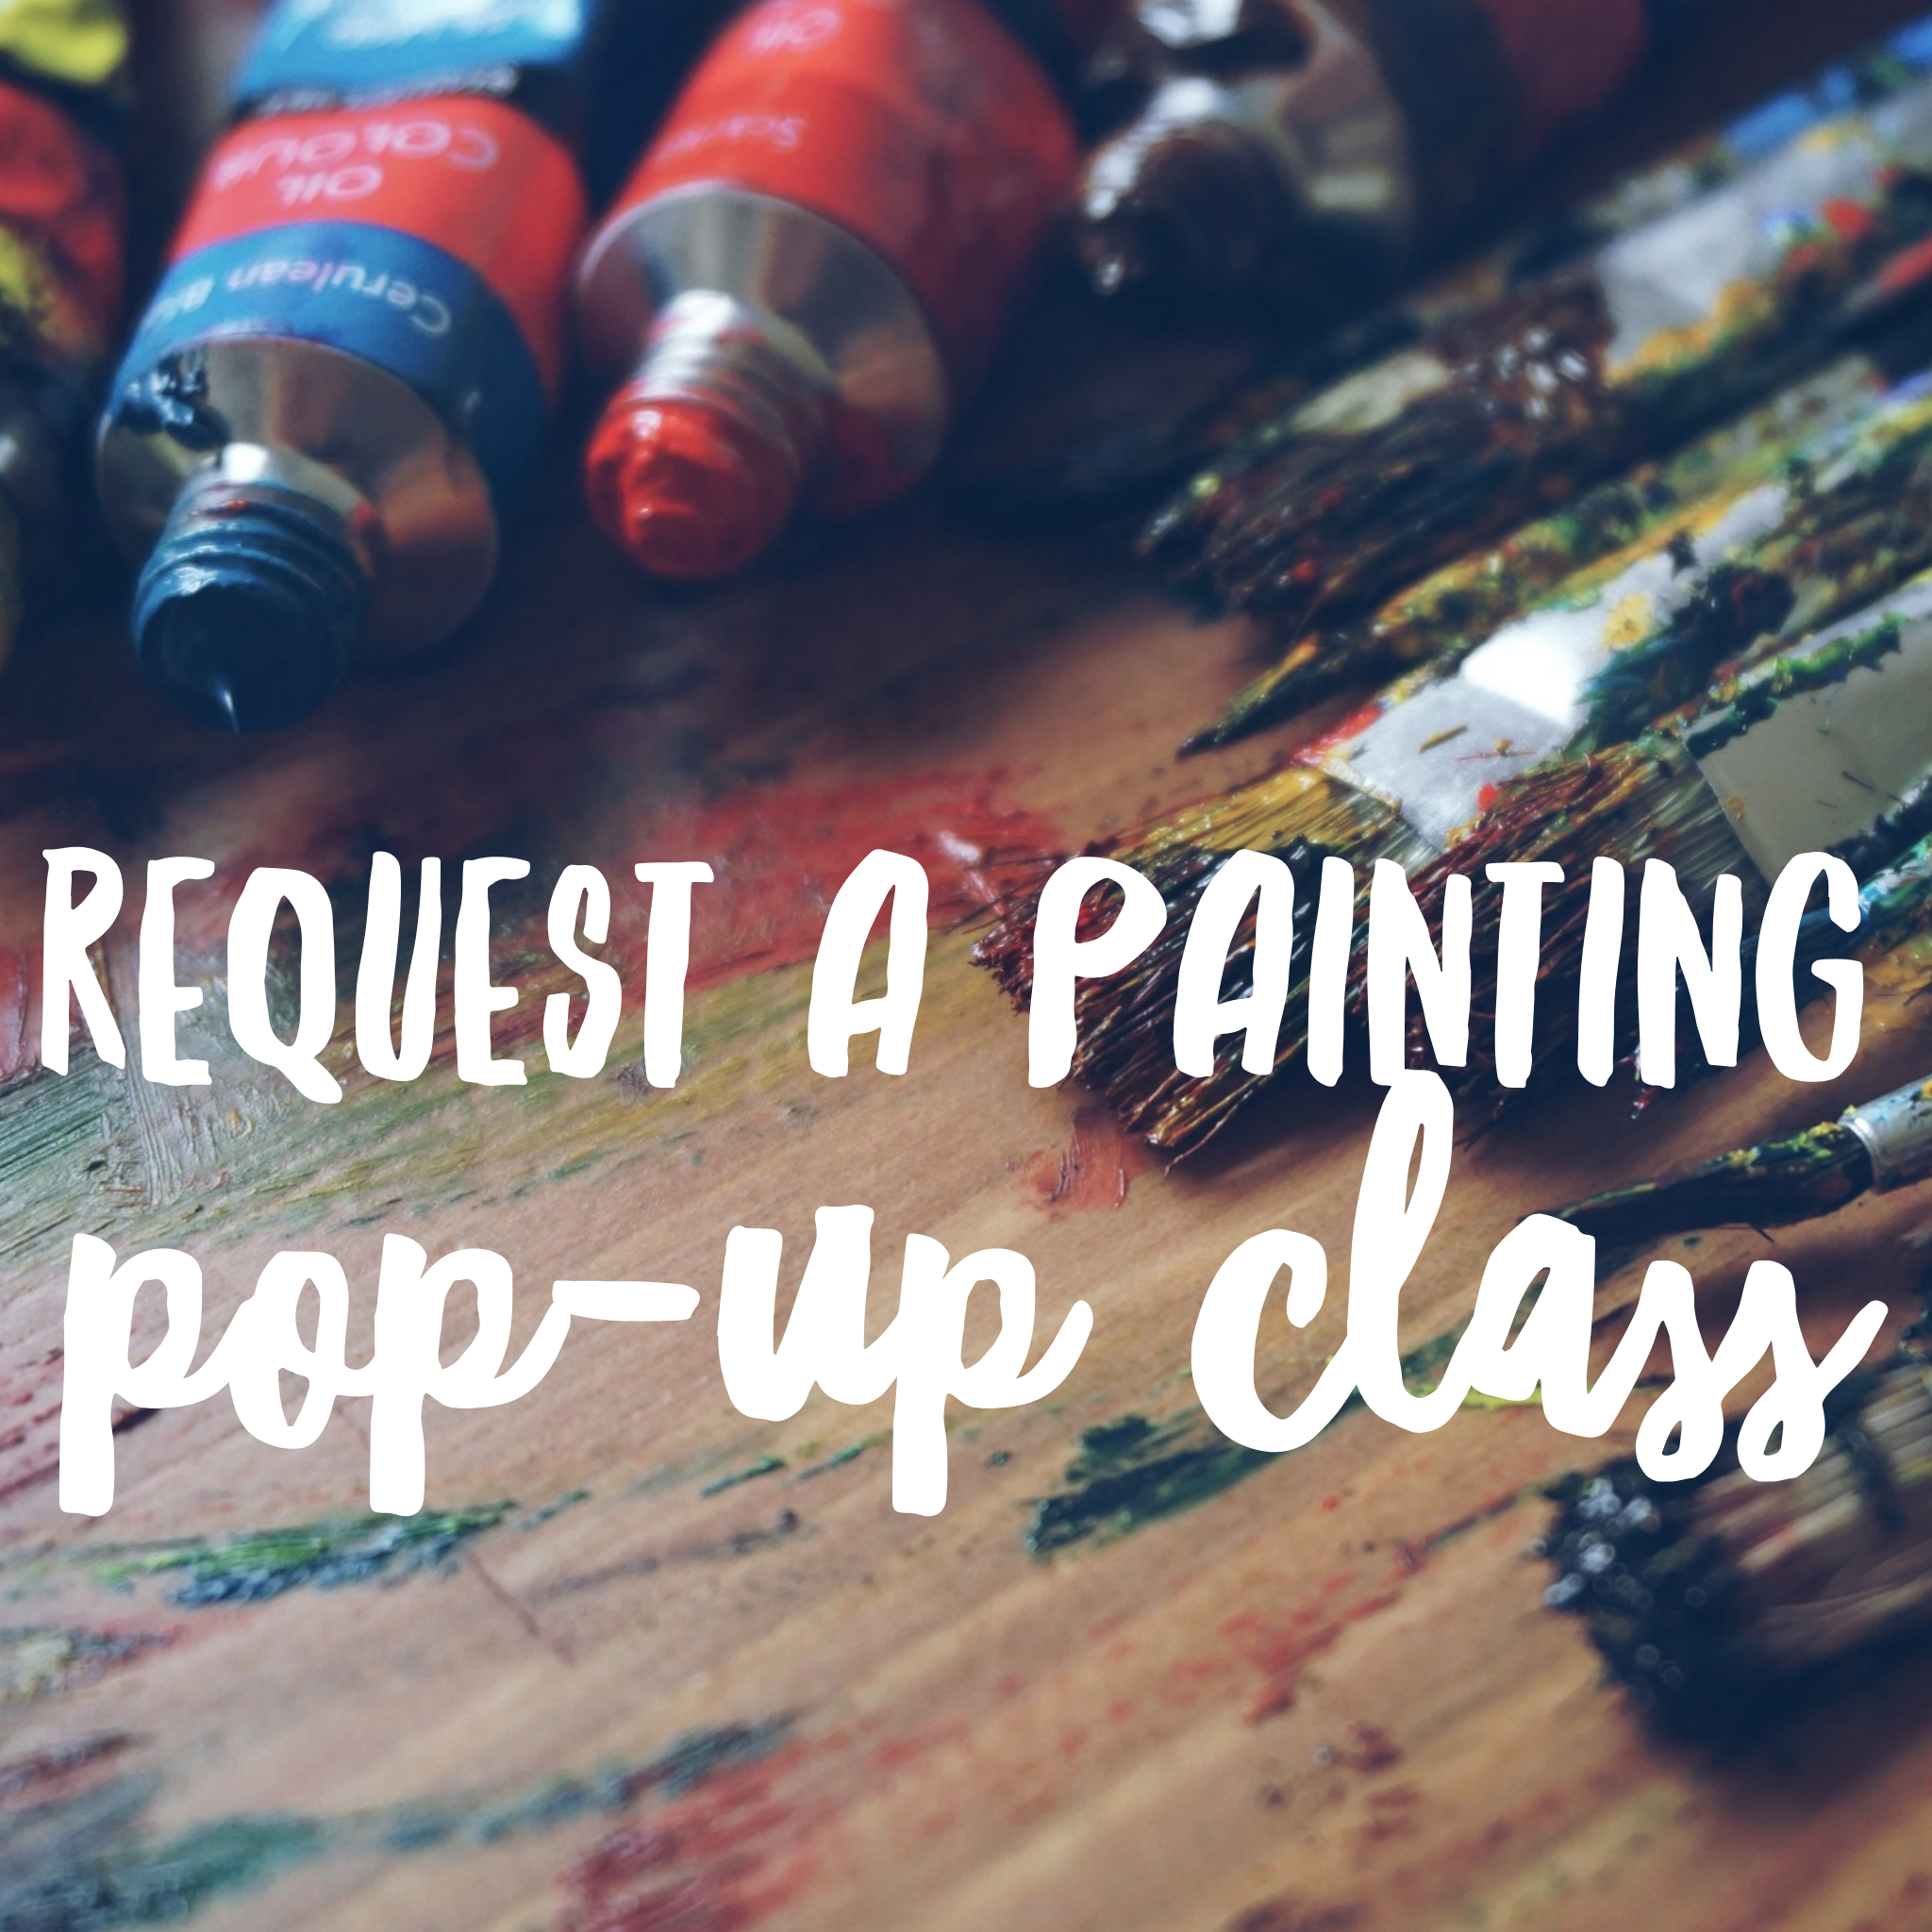 Request a Painting Pop-up Class!